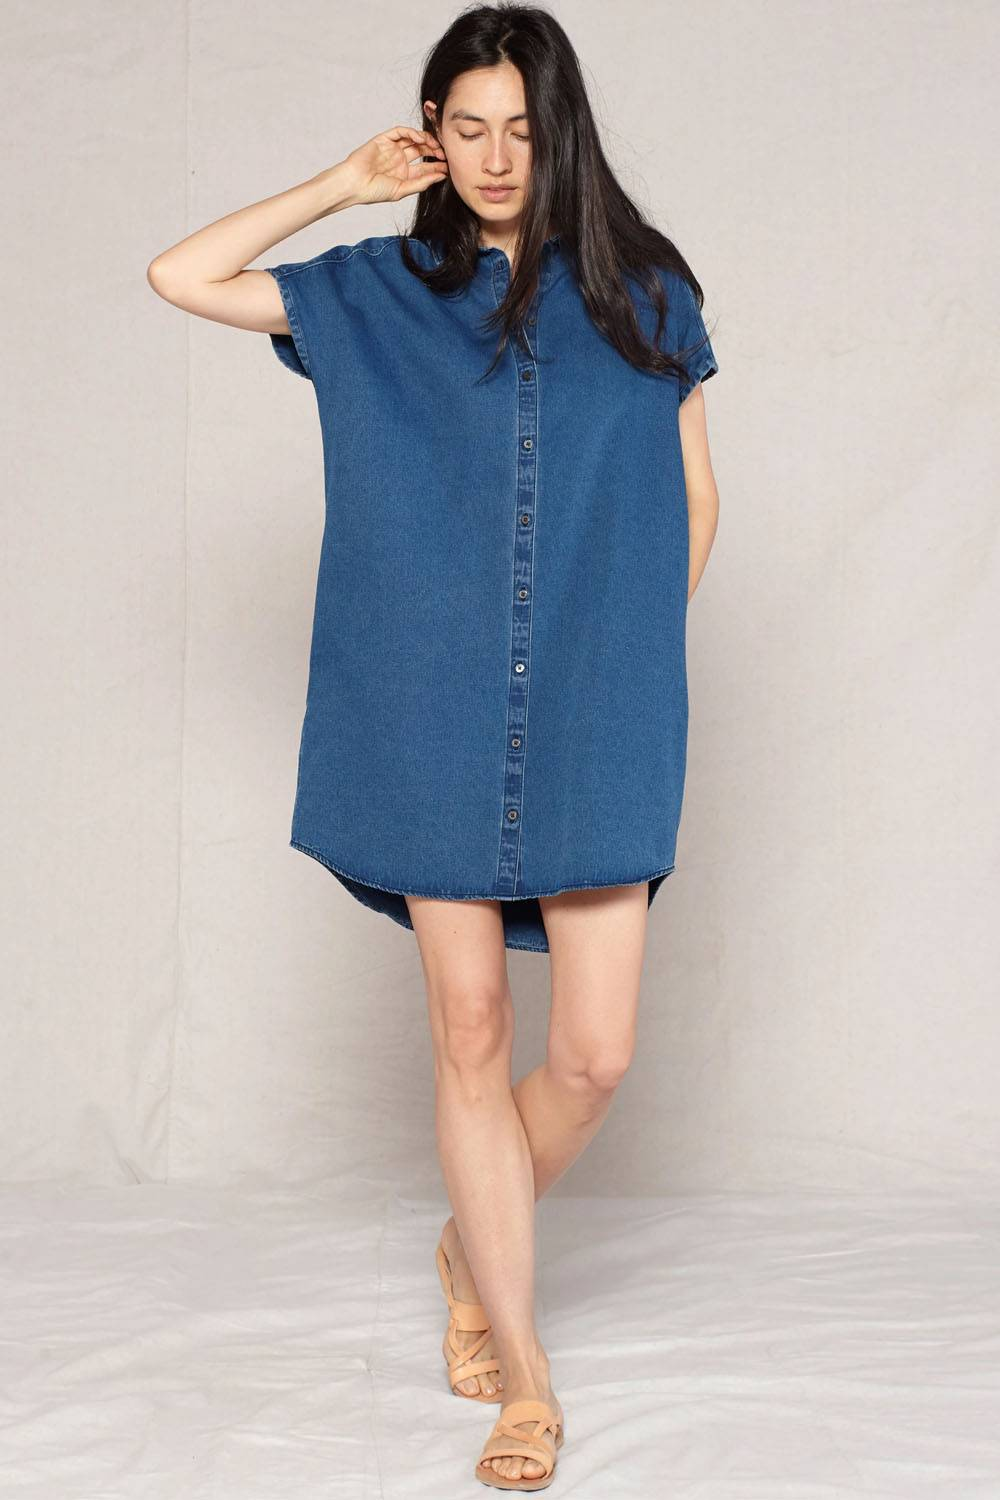 outerknown cheap ethical denim dress